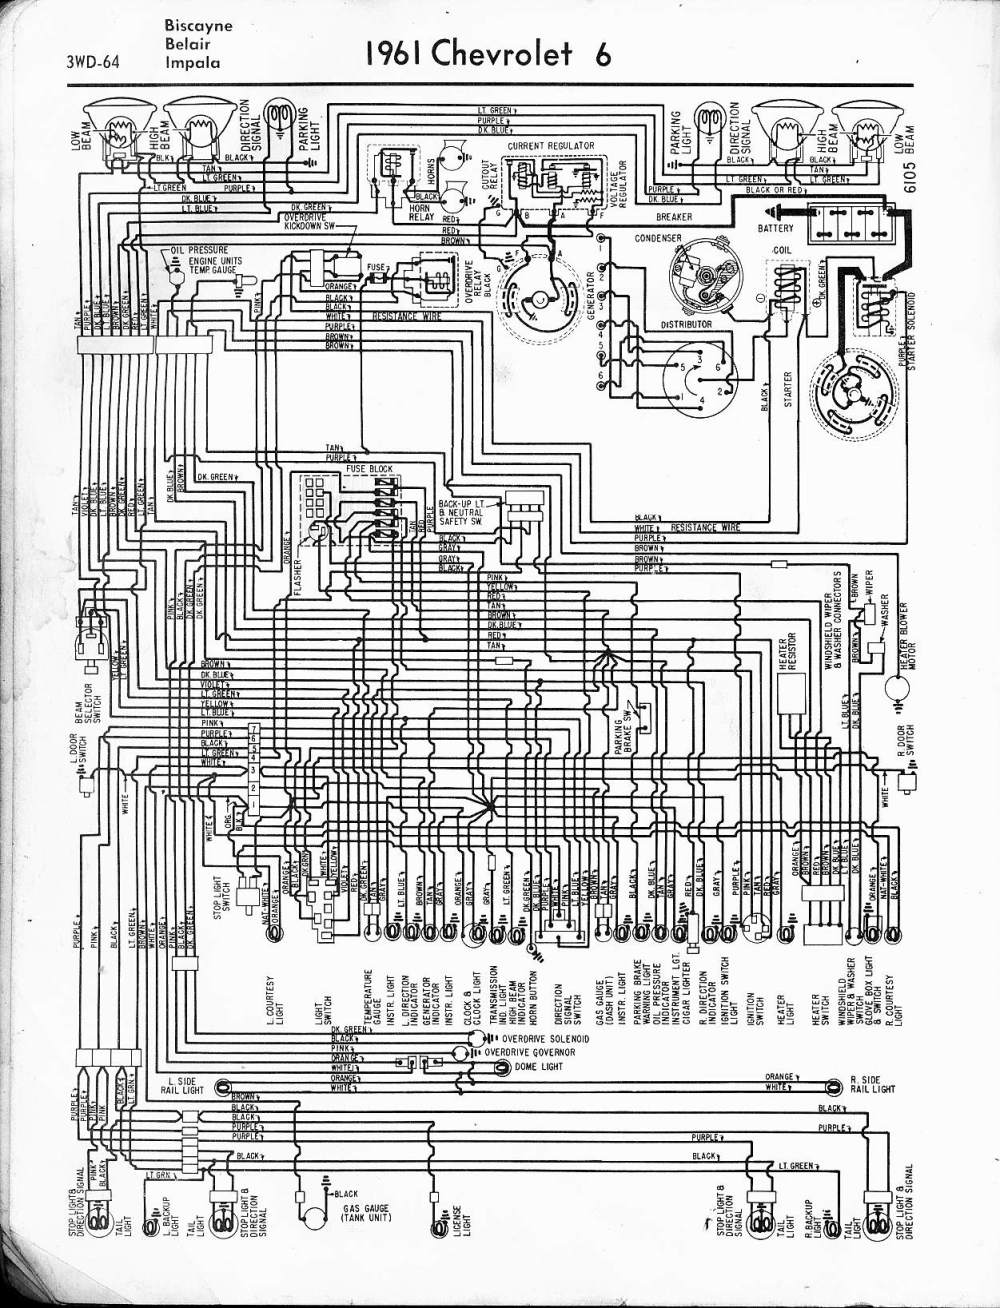 medium resolution of wiring schematic 2001 chevrolet impala automotive wiring diagrams 1963 impala schematic 1963 impala wiring diagram